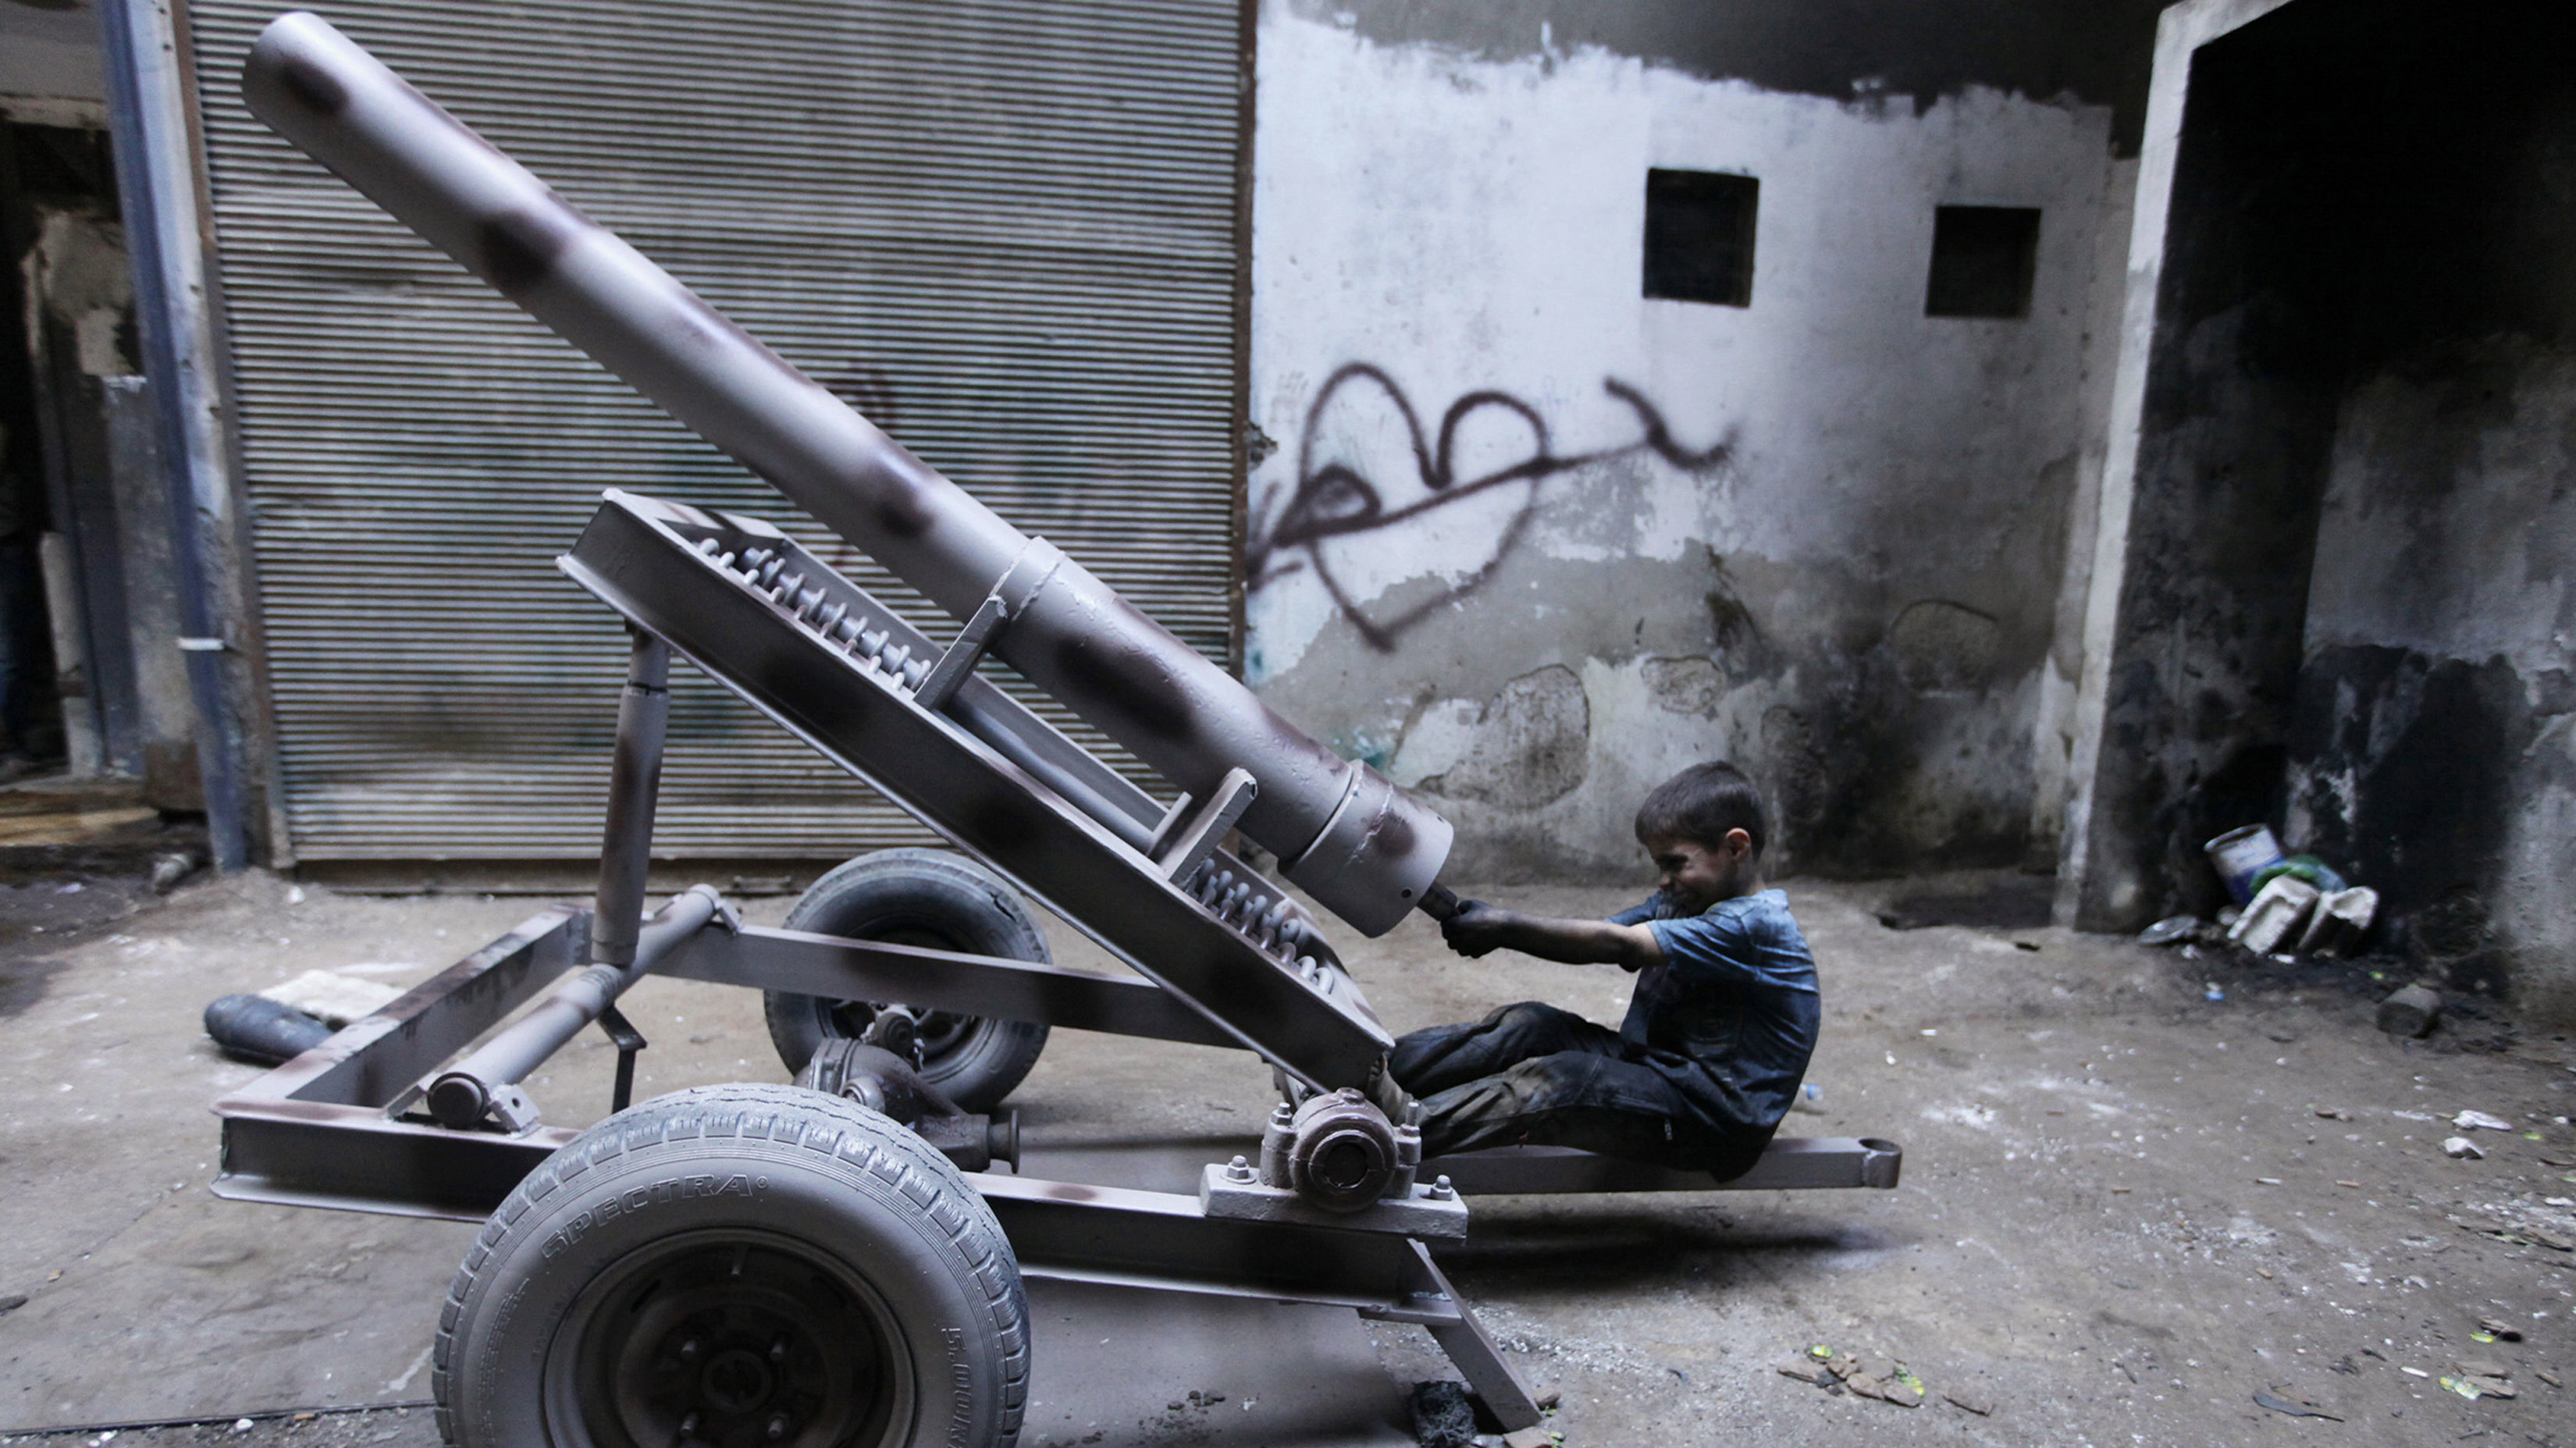 Issa, 10 years old, fixes a mortar launcher in a weapons factory of the Free Syrian Army in Aleppo, September 7, 2013. Issa works with his father in the factory for ten hours every day except on Fridays.